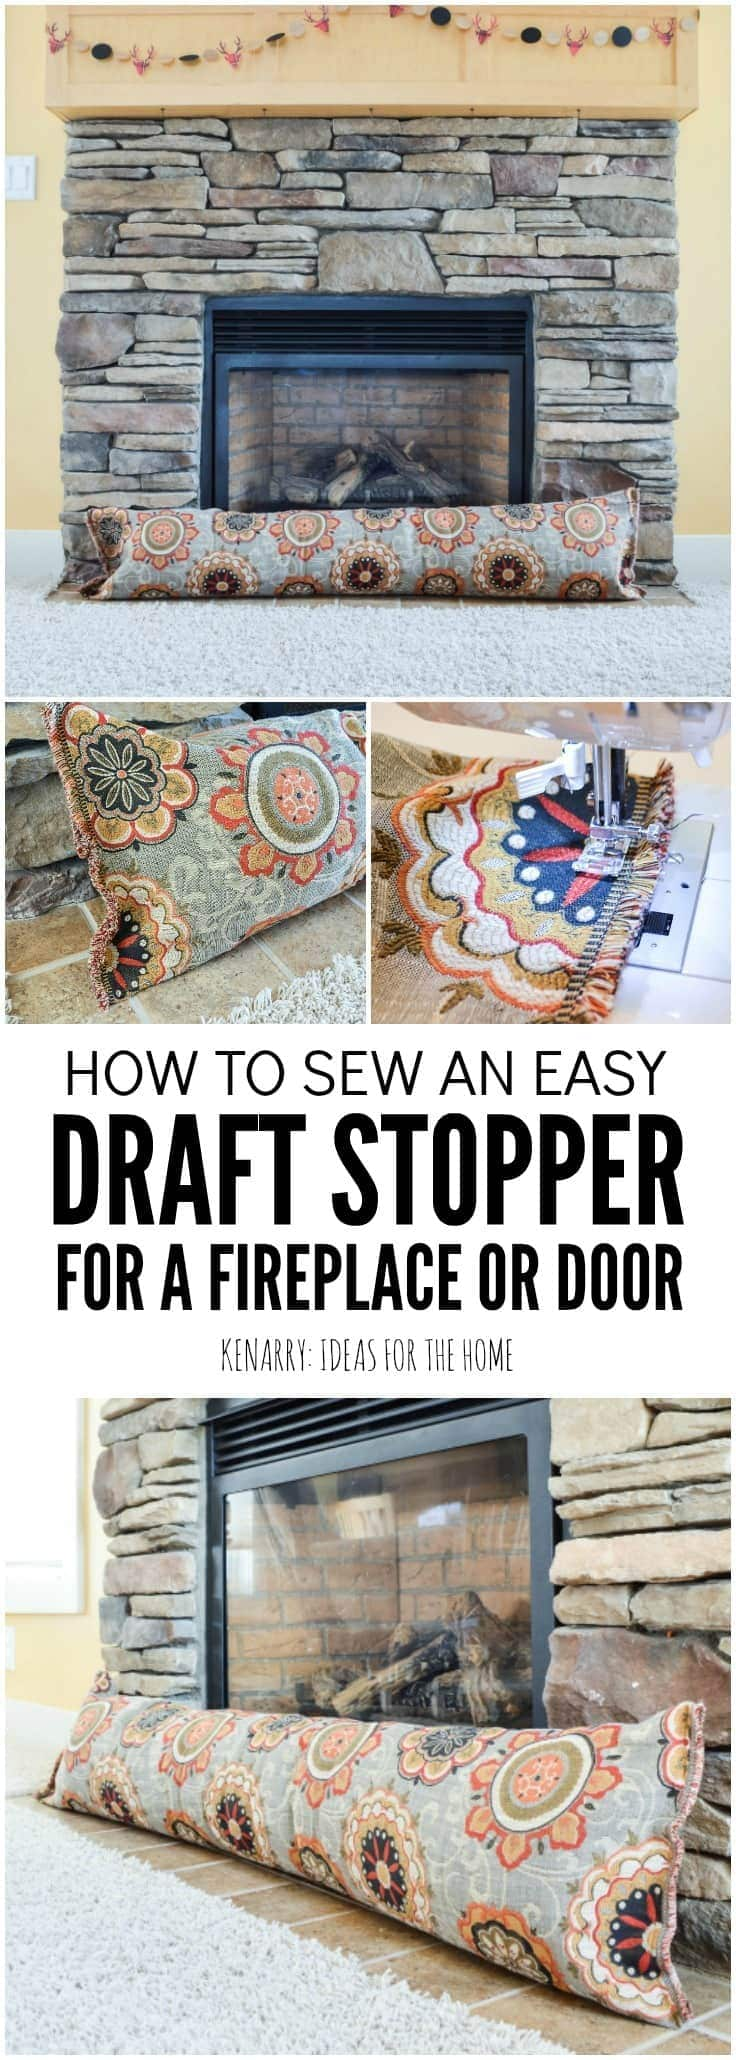 Keep cold air from coming into your home this season. In this easy sewing tutorial, you will learn how to make a fireplace draft blocker. This simple DIY draft stopper idea will help you stay warm and save on heating costs this winter. draft stopper | draft protector | draft excluder | door draft blocker